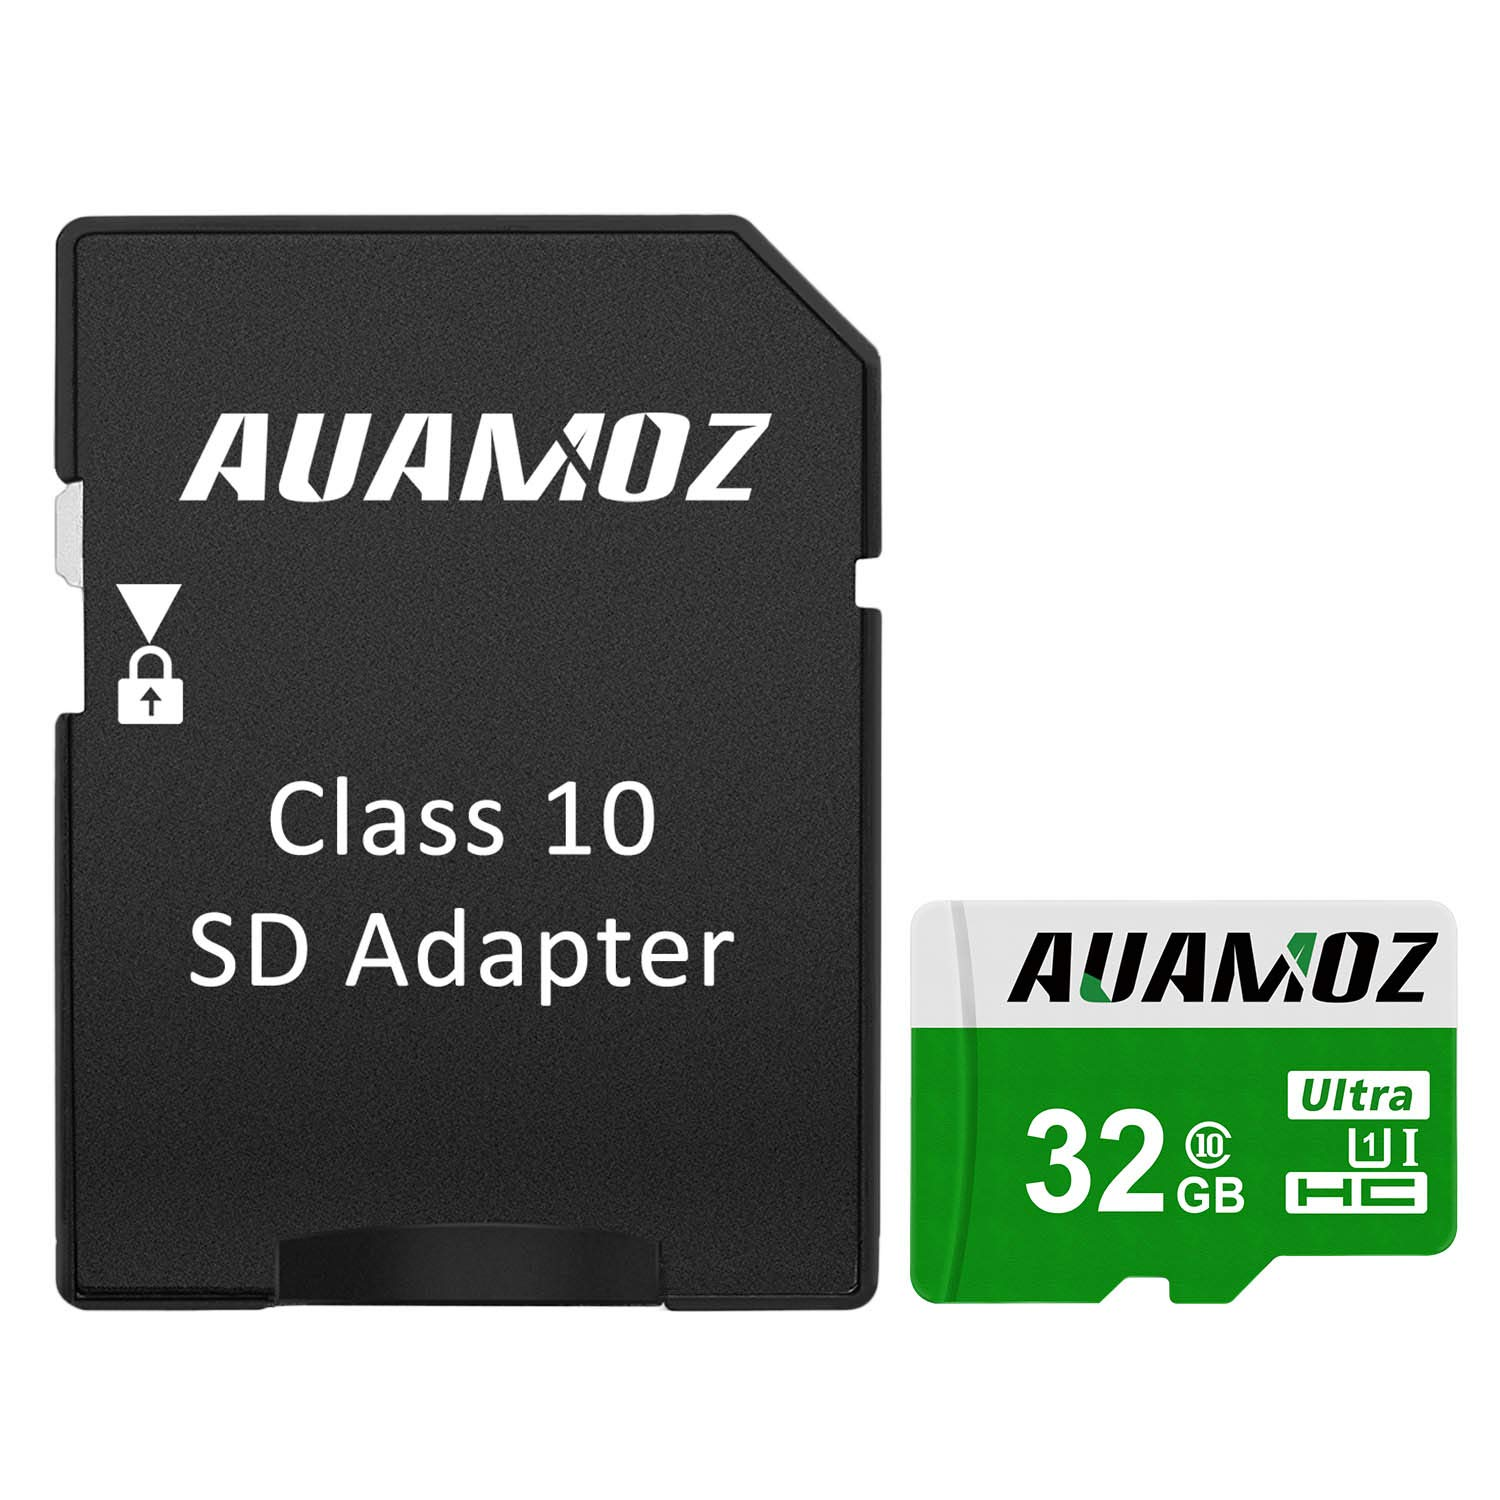 Tablet and PCs Micro SDHC Class 10 UHS-I High Speed Memory Card for Phone Micro SD Card 32GB